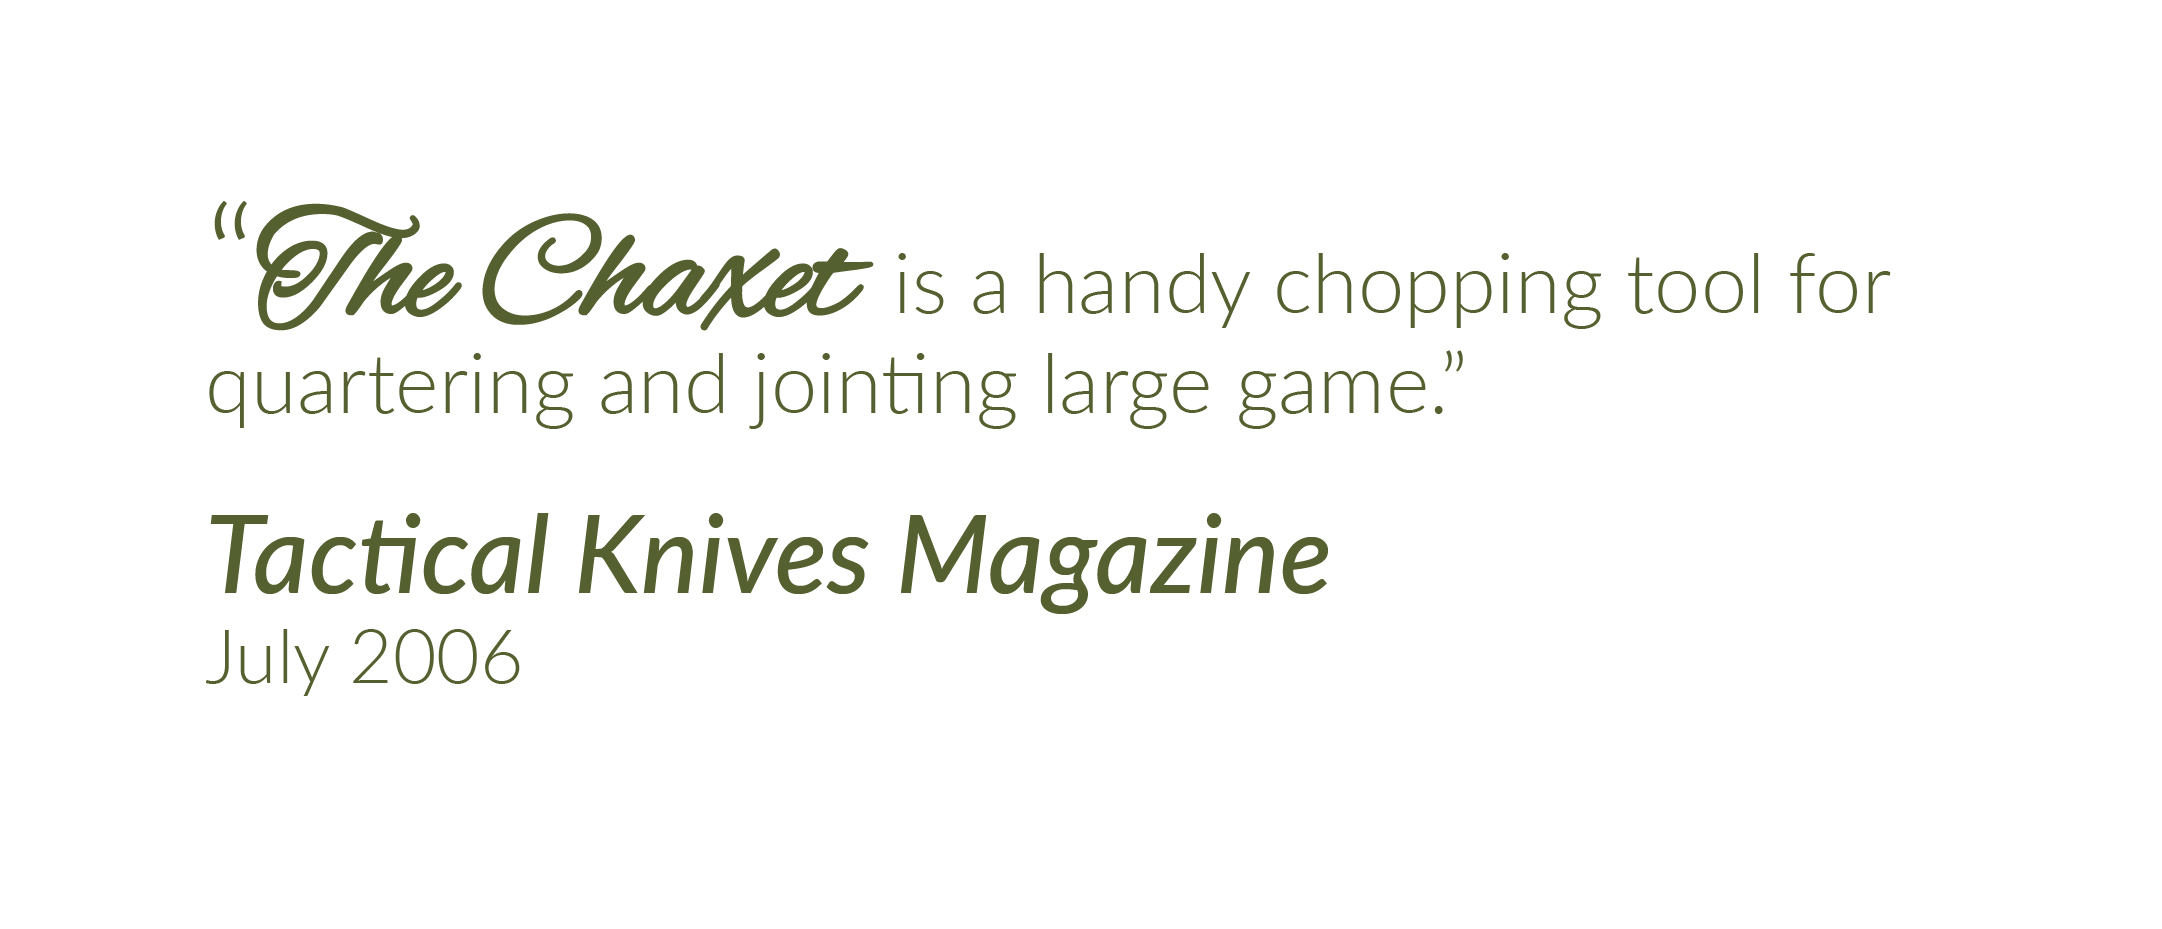 Tactical Knives Magazine Quote